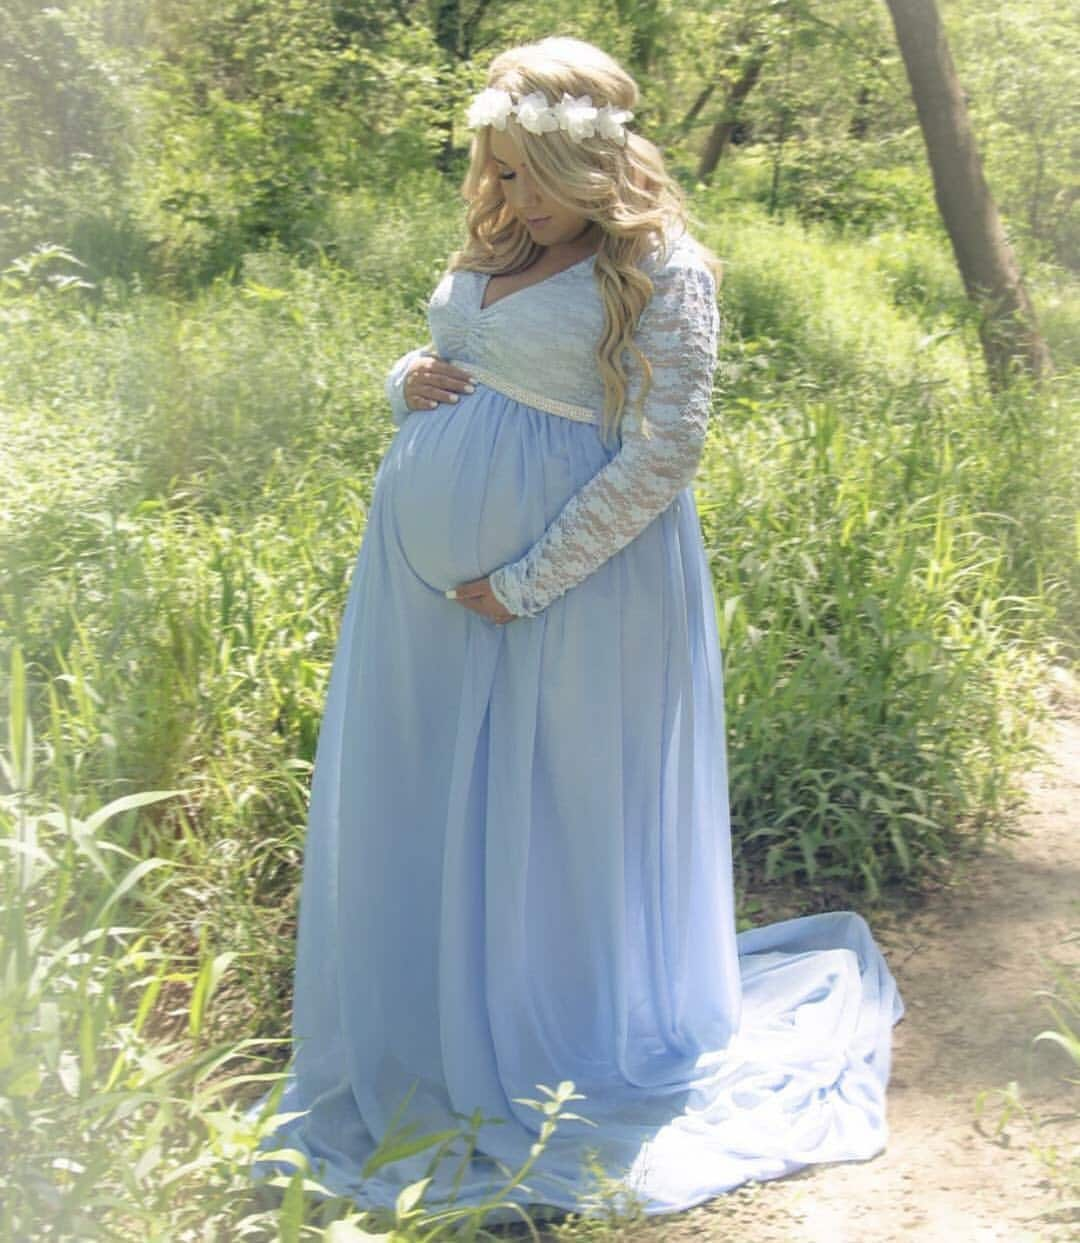 Light blue Lace Chiffon Lining long sleeves maternity gown   Etsy